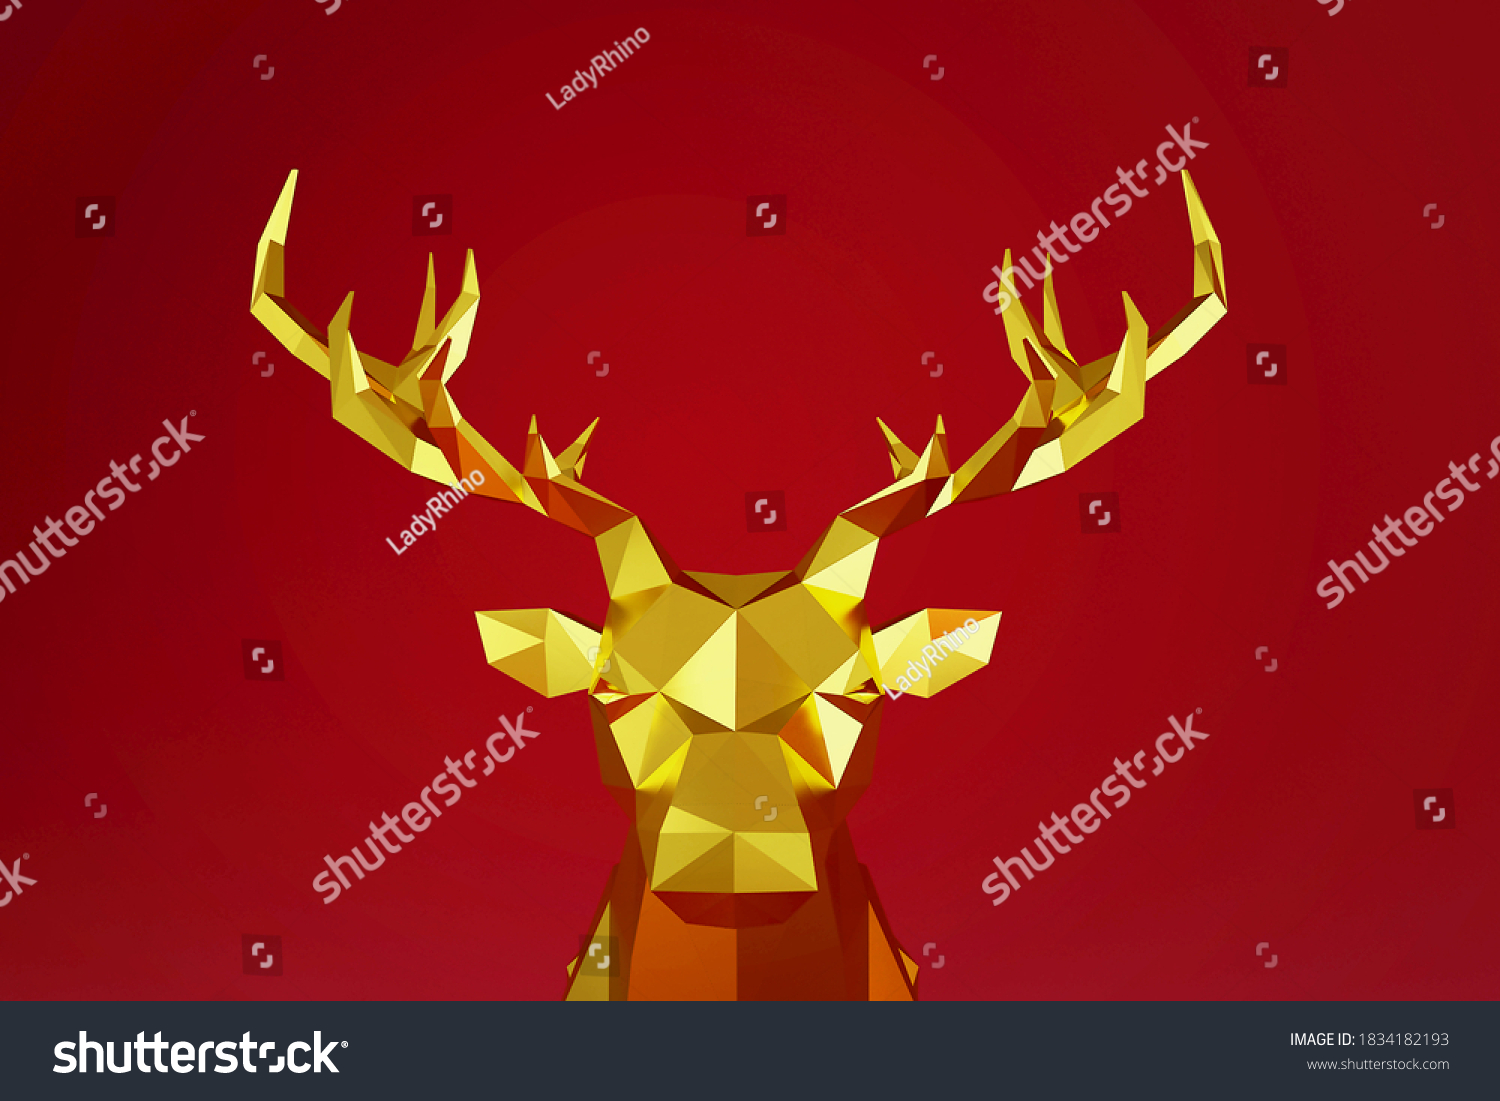 stock-photo-polygon-gold-reindeer-with-r